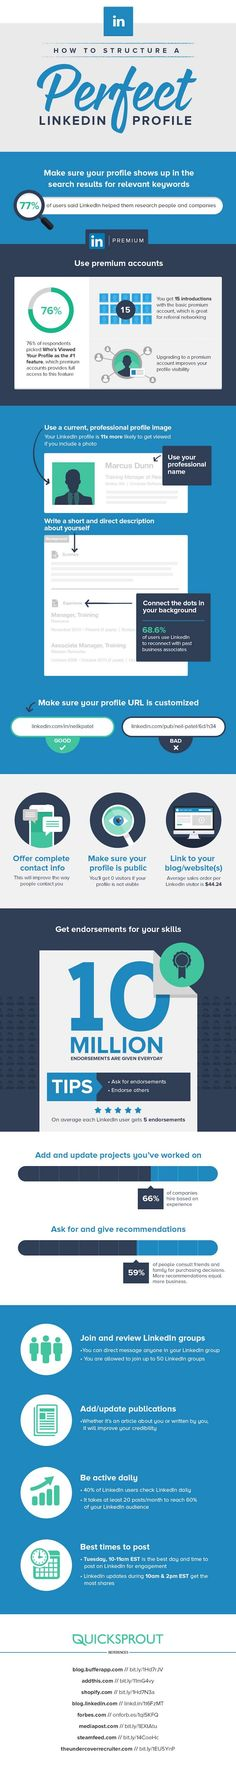 How to Create an Awesome LinkedIn Profile? INFOGRAPHIC — Business Daily: Startups, Business Development, Management — Medium